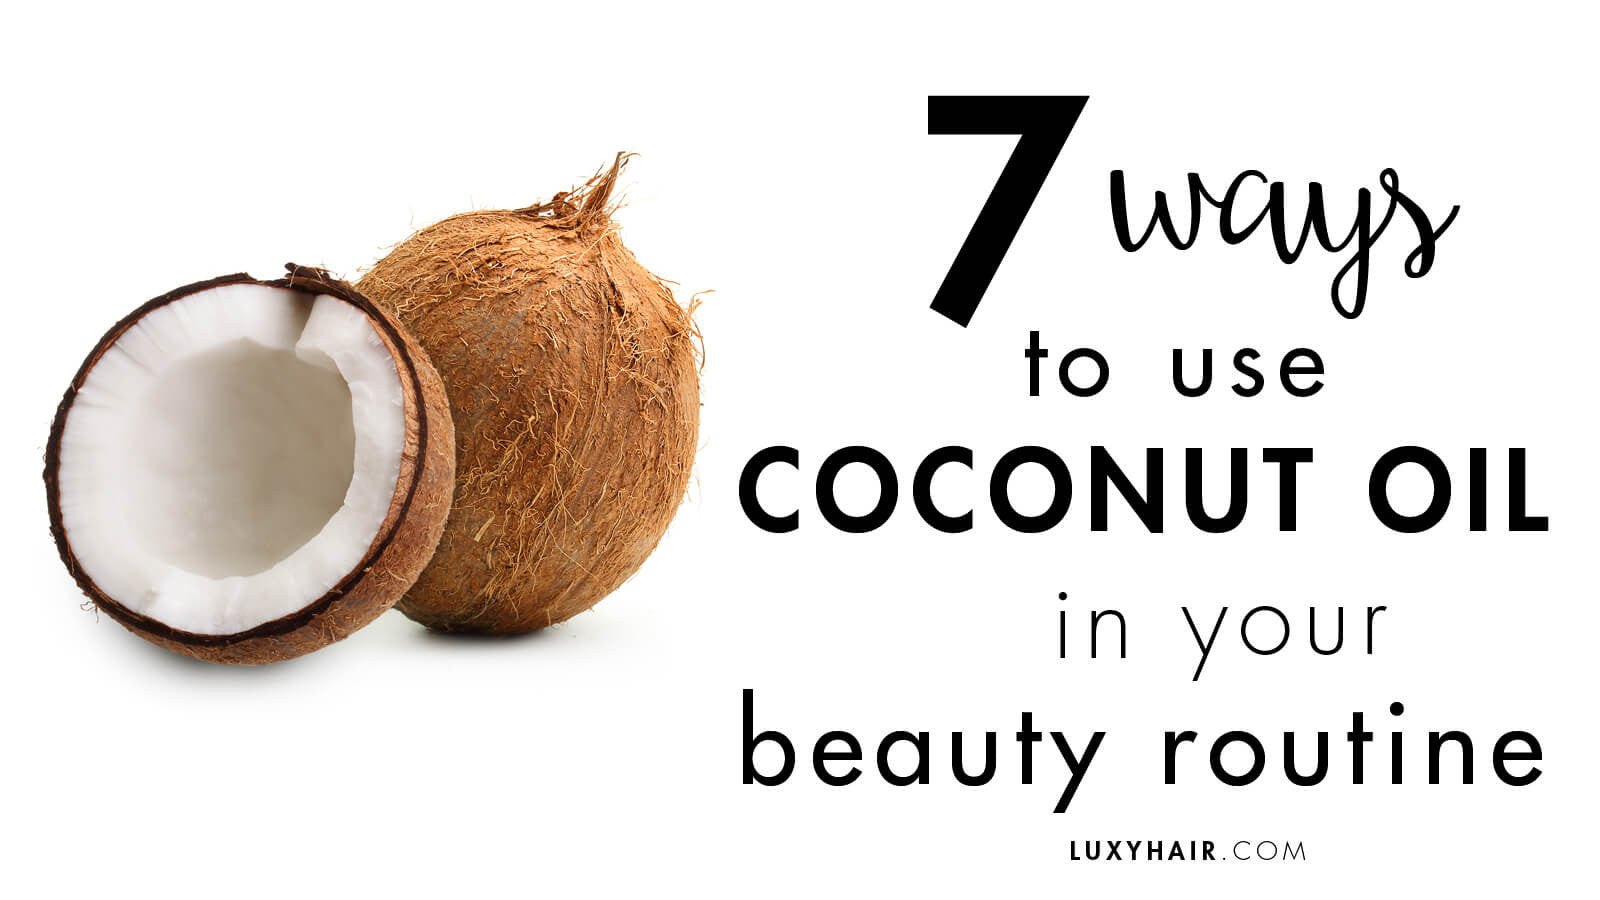 Ways To Use Coconut Oil In Your Beauty Routine  Luxy Hair - How to use coconut oil on hair